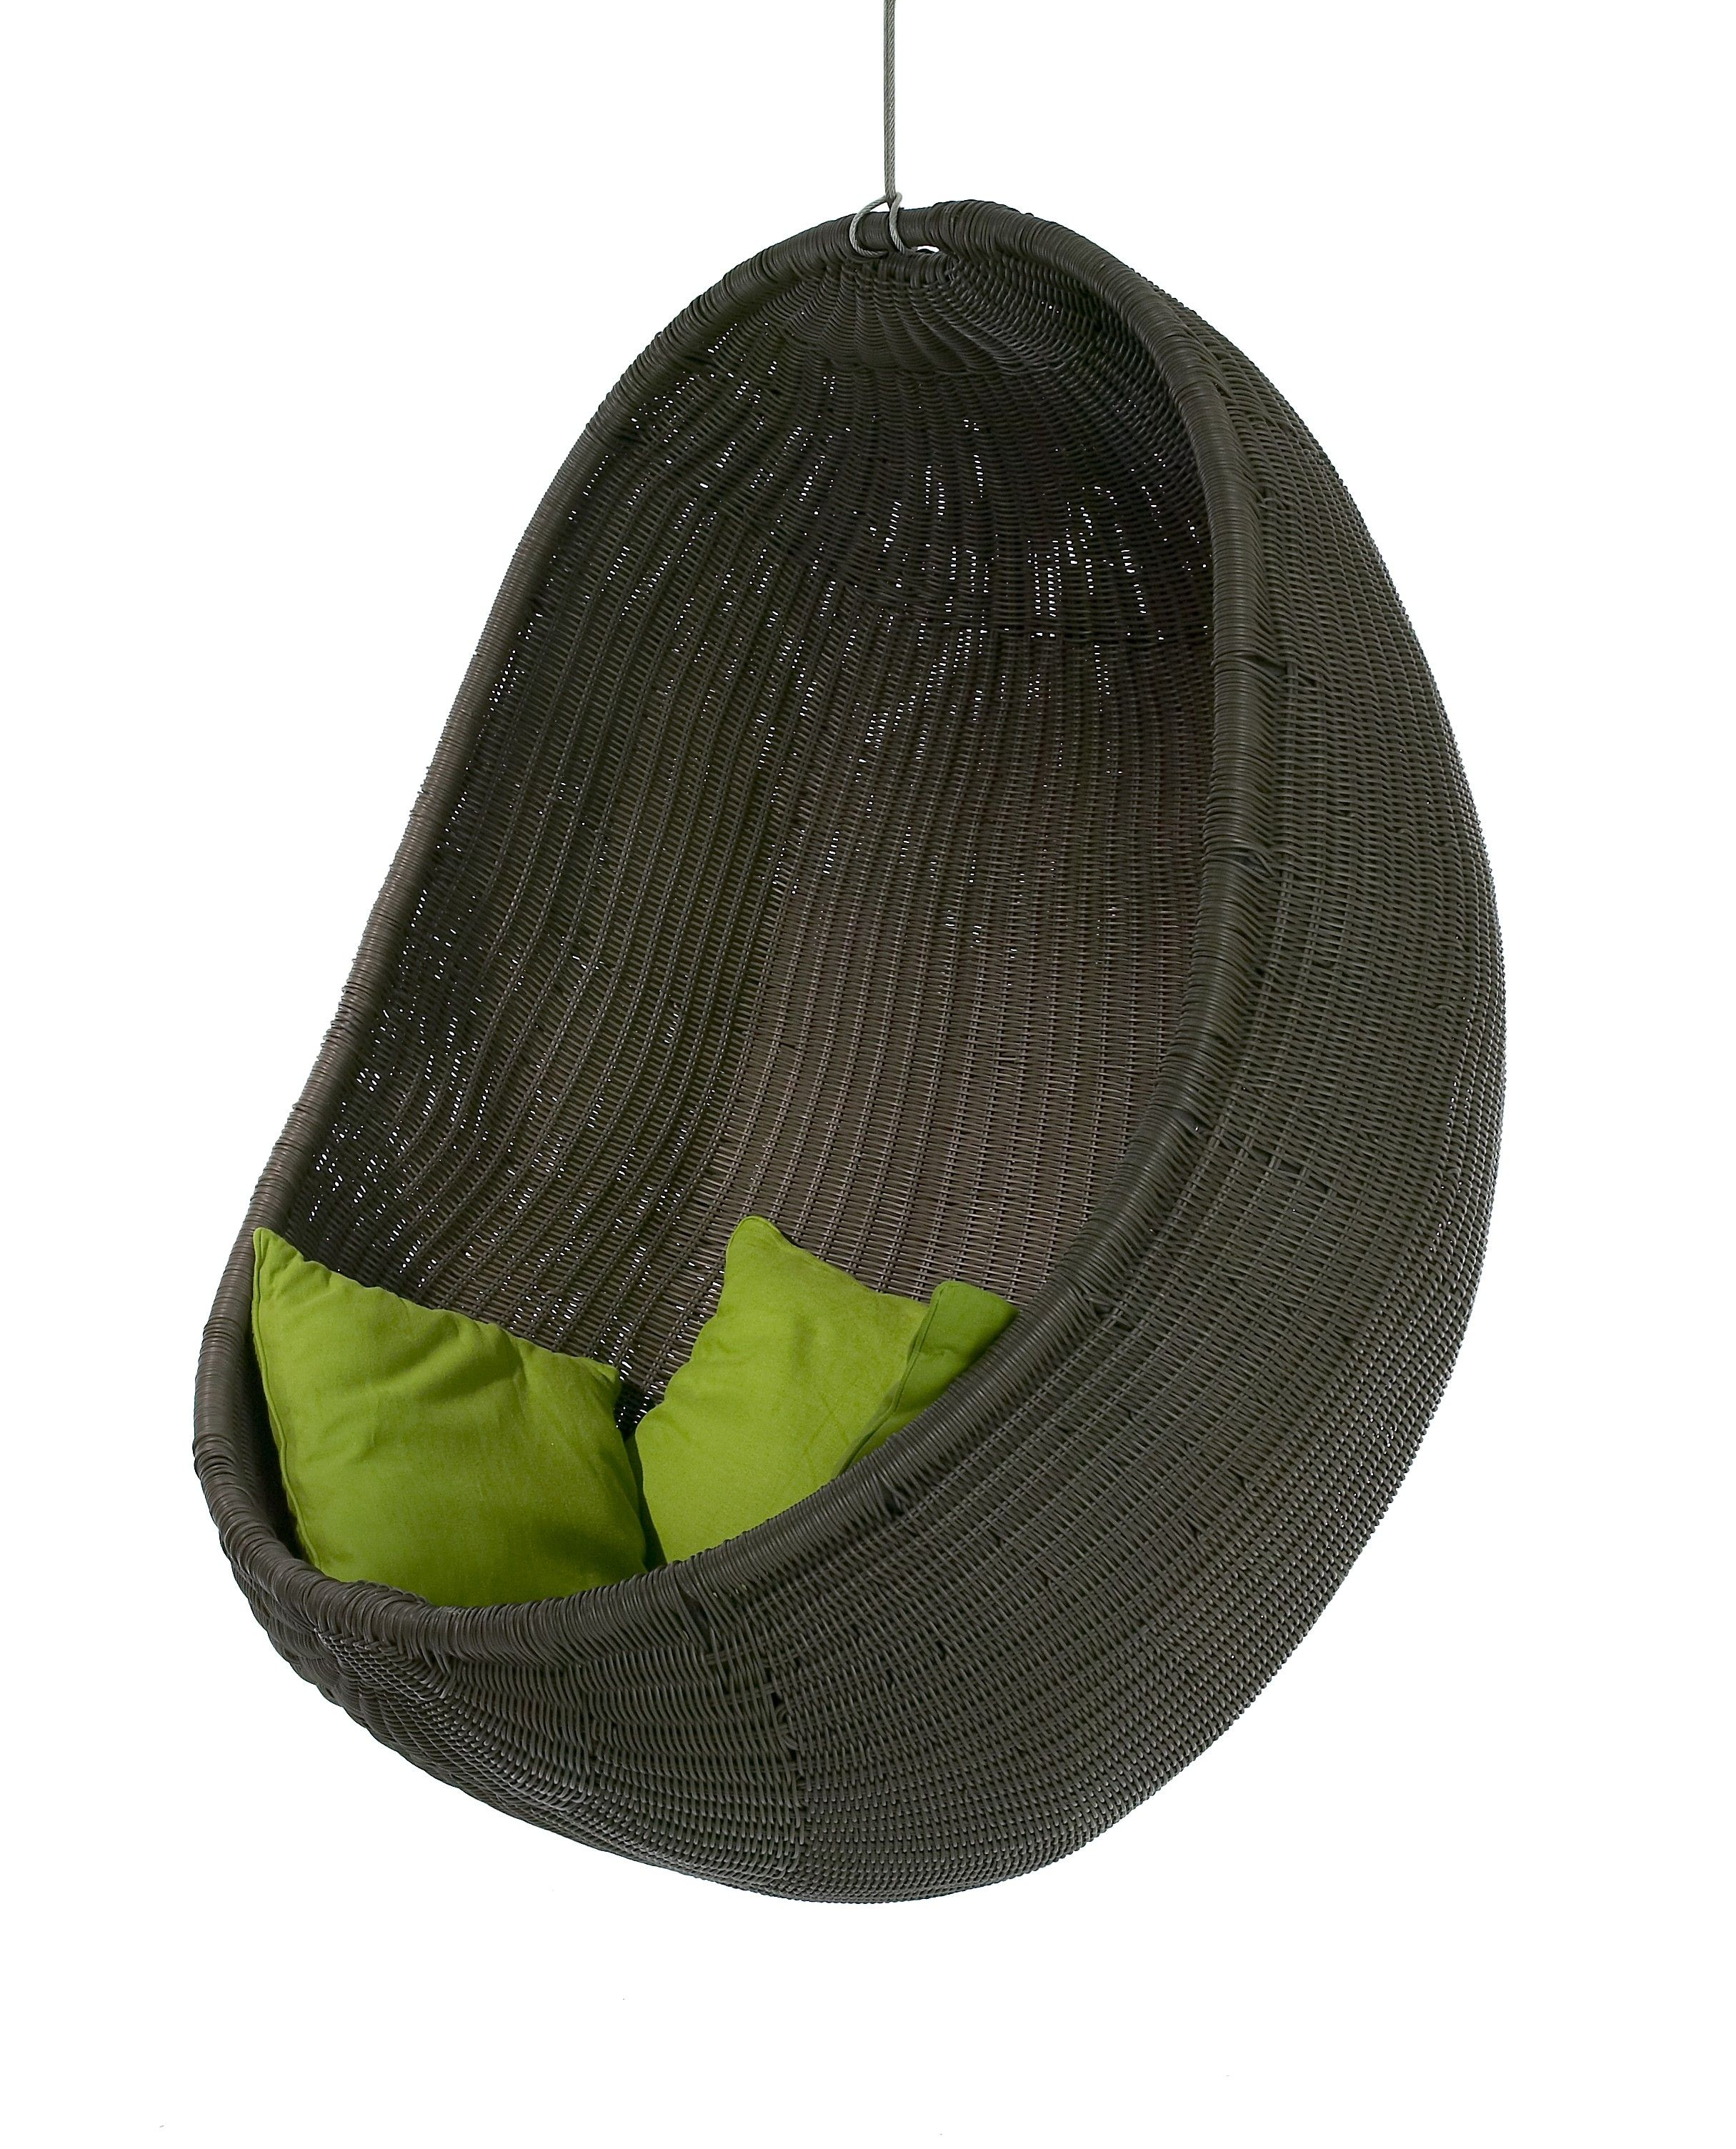 Outback Chair Company Introduces The Cove The First Hanging Chair In Its New Urban Balance Collection Of Rat Hanging Chair Hanging Furniture Hanging Egg Chair